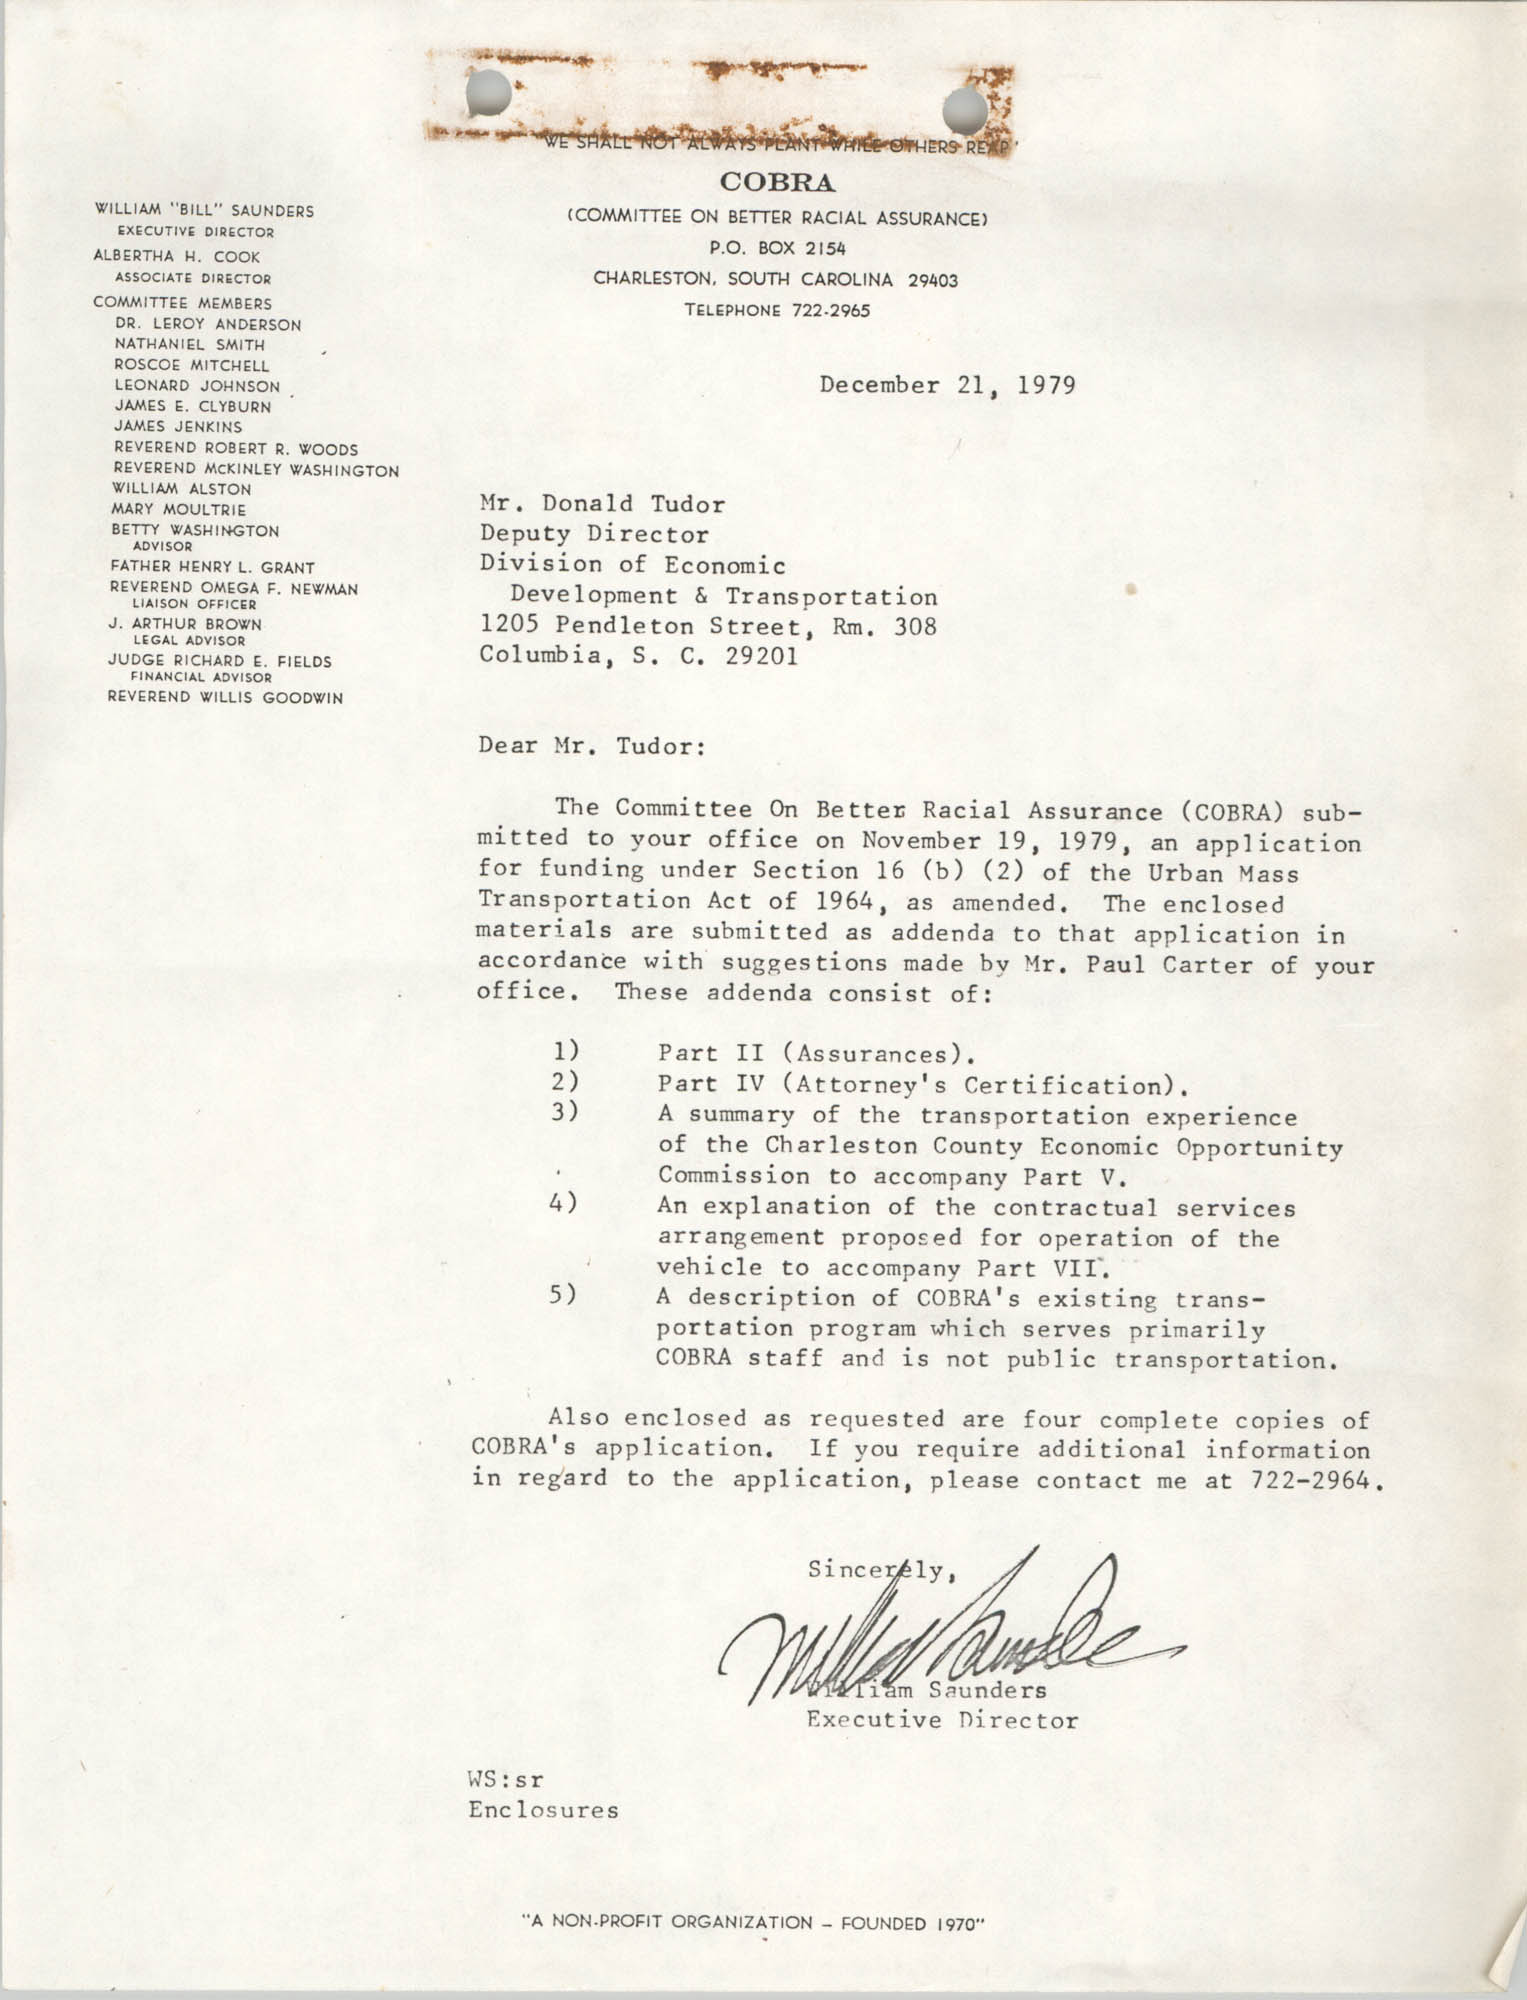 Letter from William Saunders to Donald Tudor, December 21, 1979